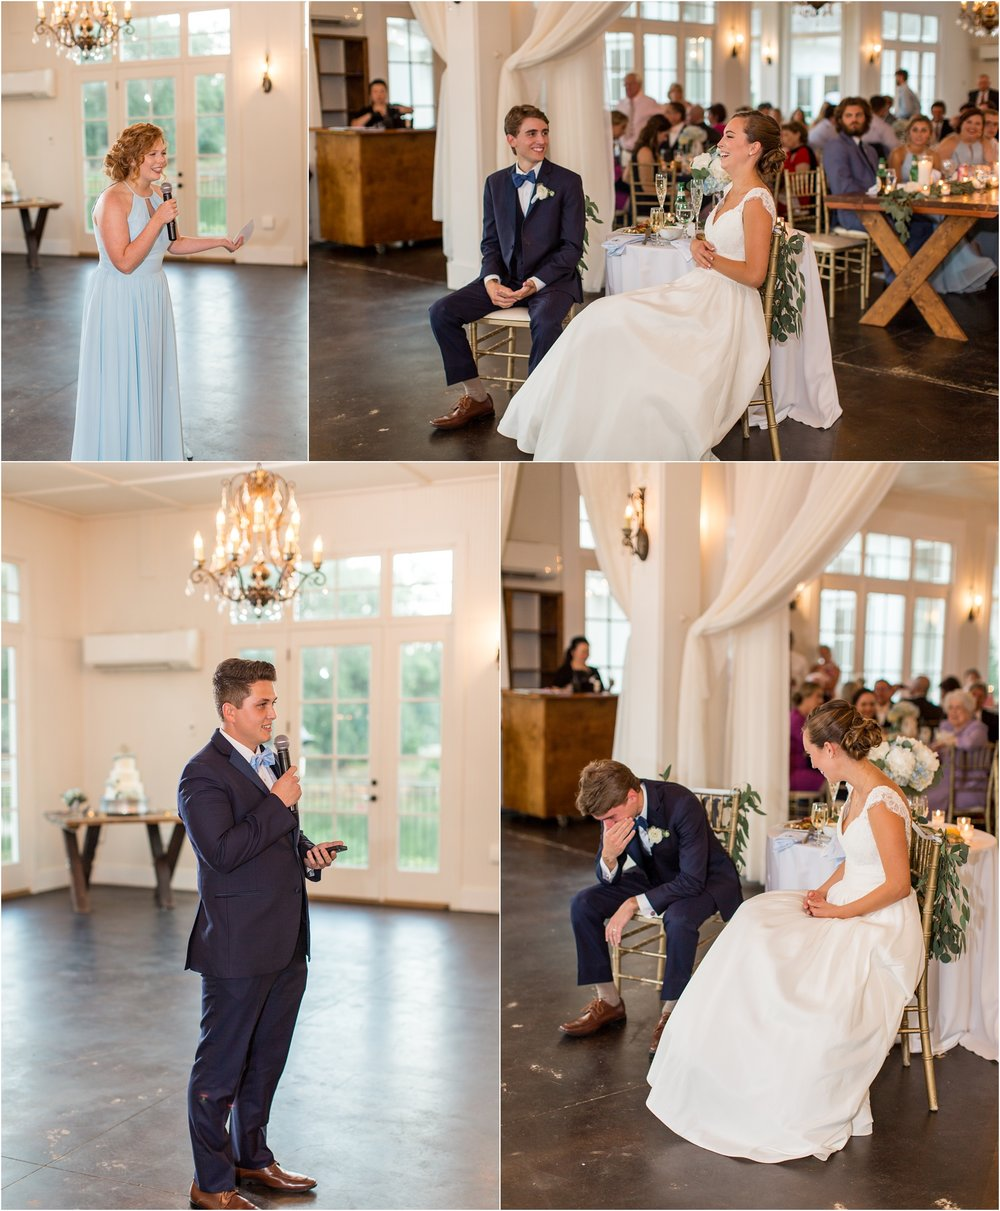 Savannah Eve Photography- Sigl-Adams Wedding- Sneak Peek-78.jpg